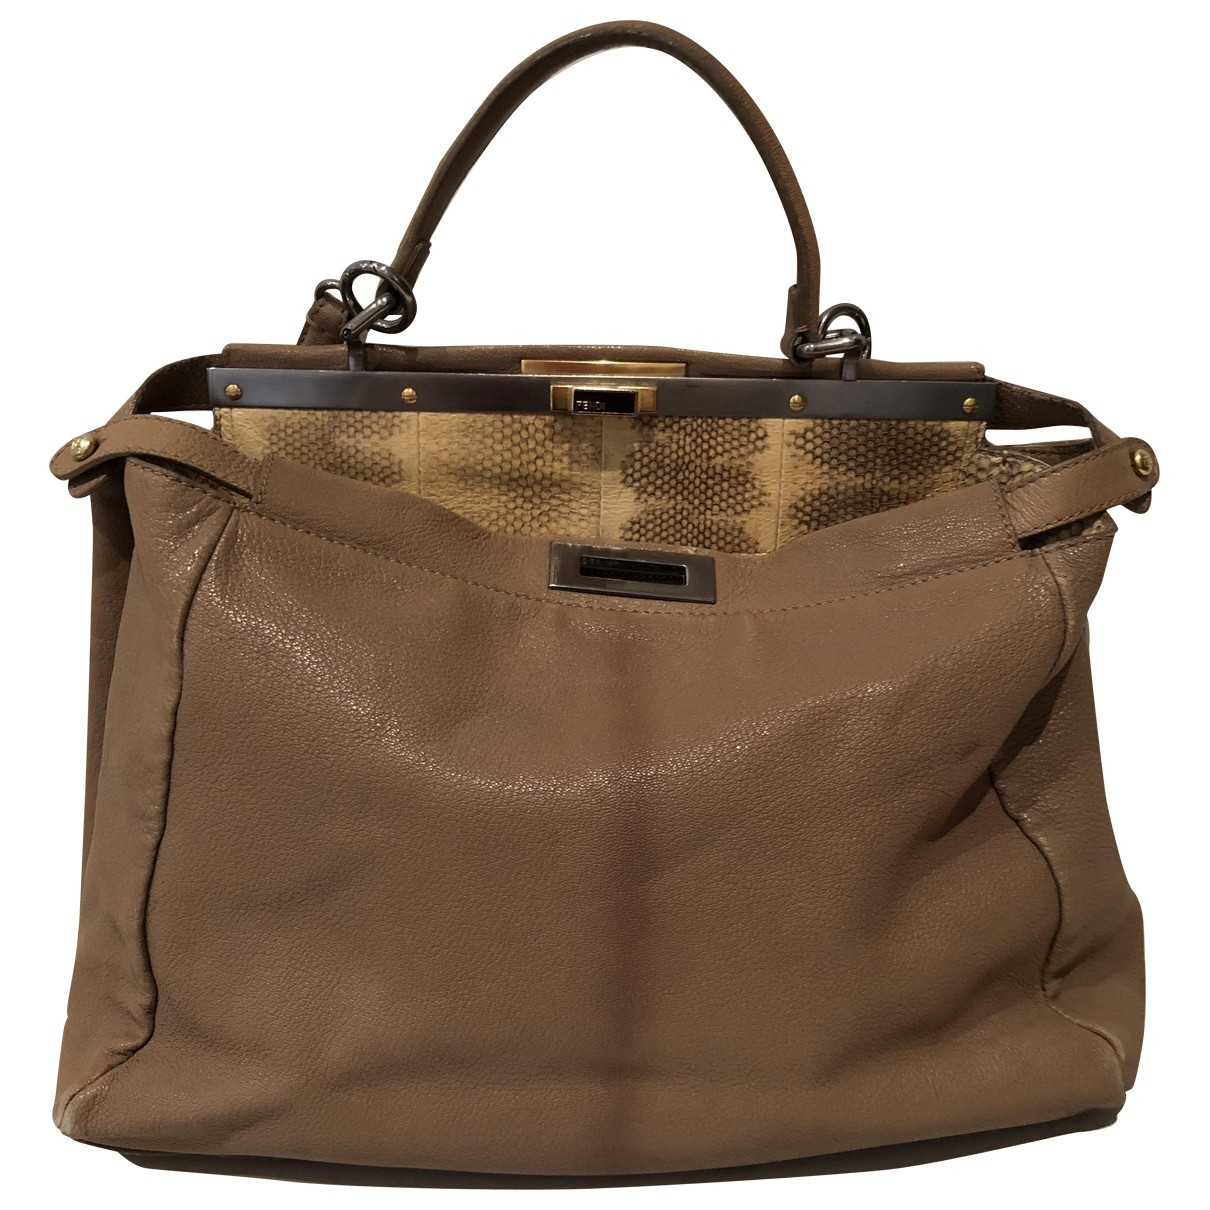 Fendi Peekaboo Camel Leather handbag for Women \N